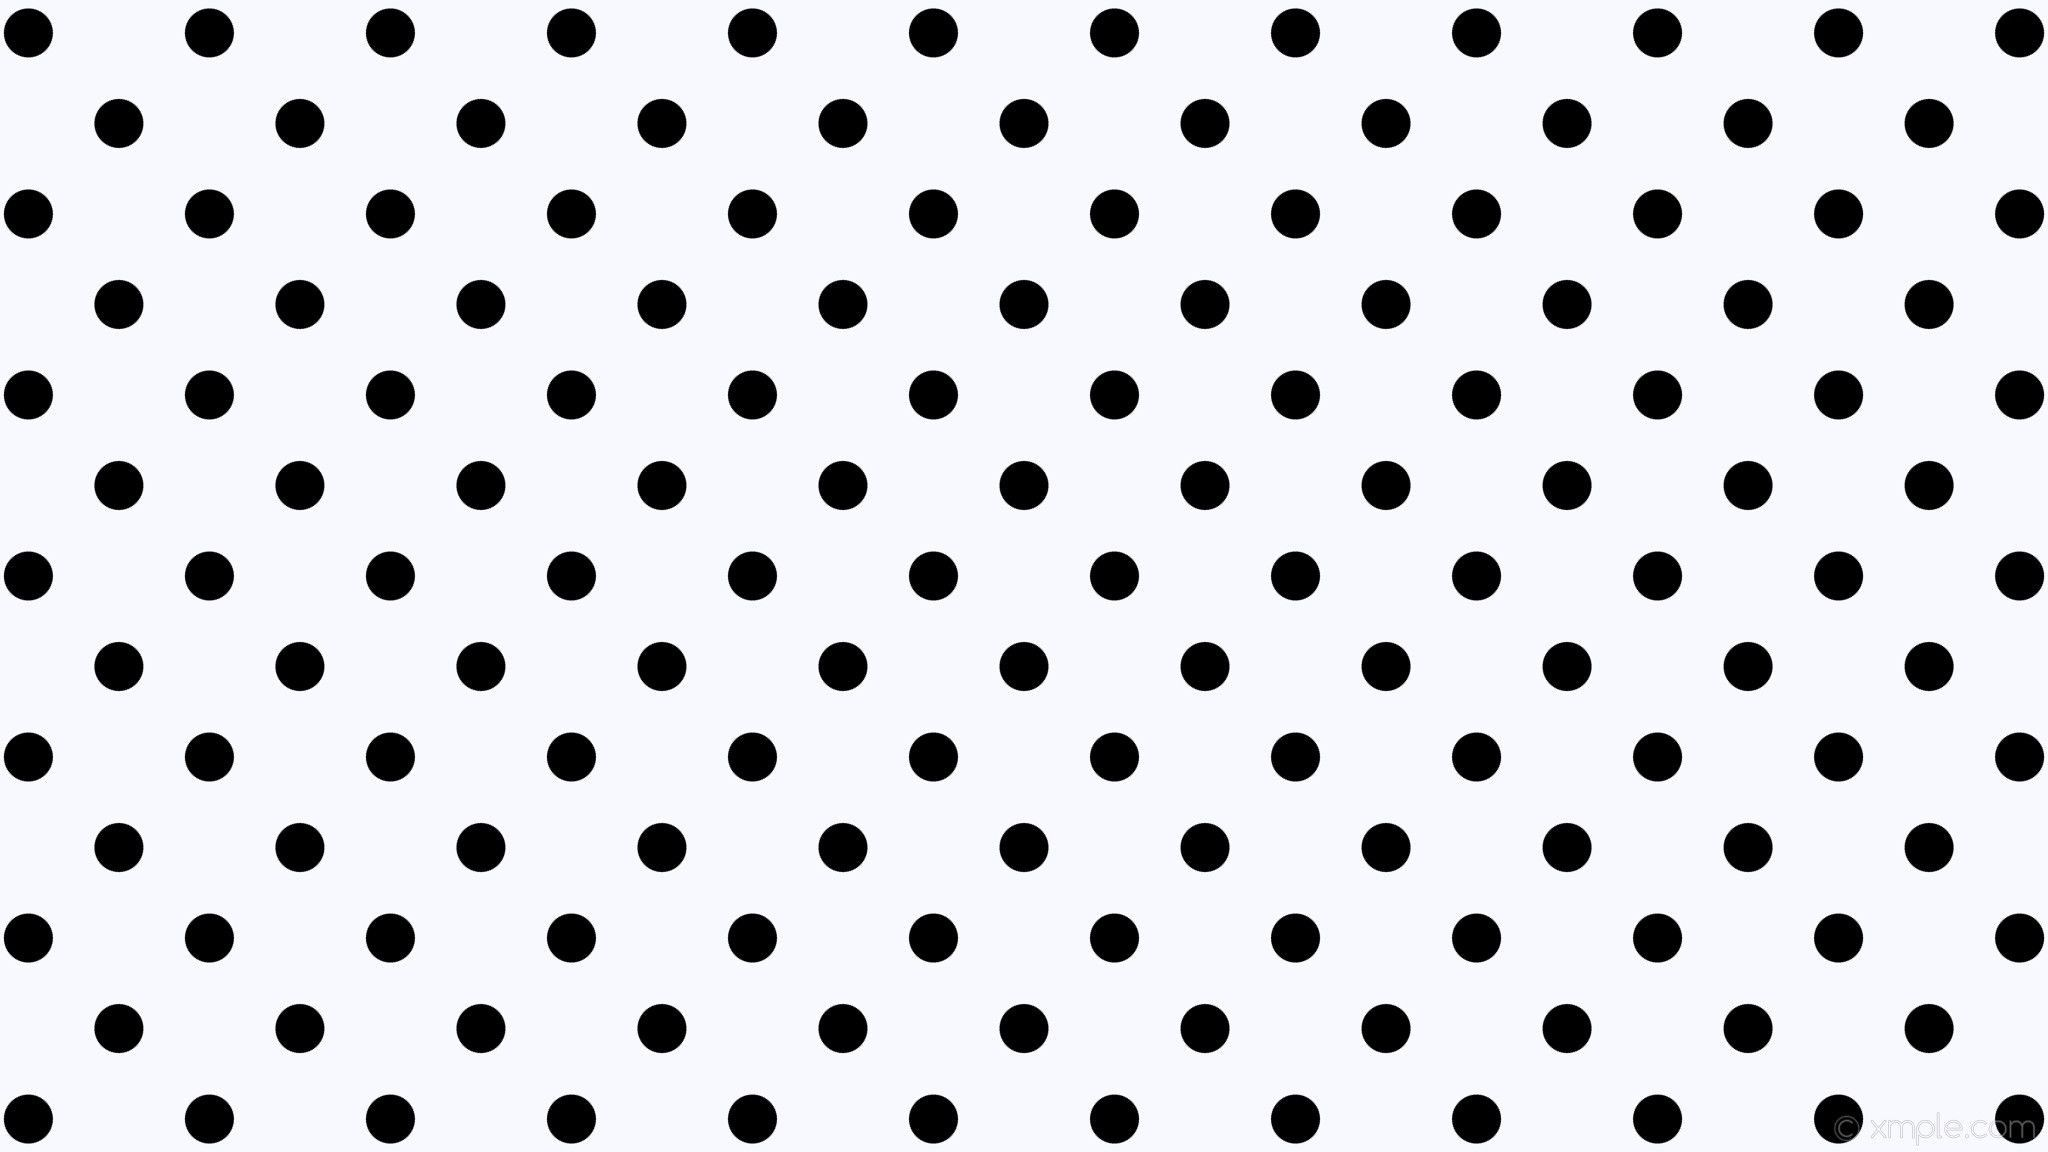 Black And White Polka Dots Wallpapers Top Free Black And White Polka Dots Backgrounds Wallpaperaccess